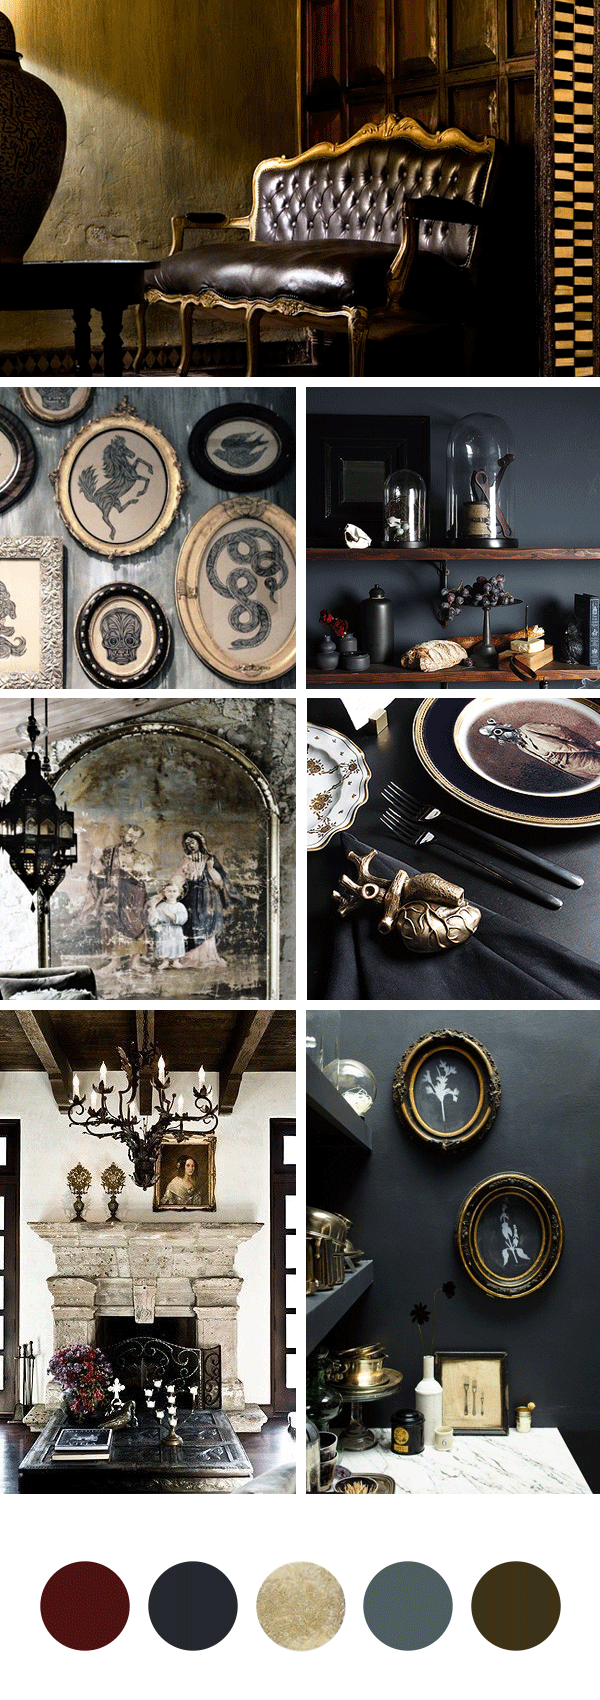 Gothic Halloween Dinner Party Mood Board // How to Do A Spooktastic and Elegant Halloween Dinner Party // Staged4more Home Staging & Design